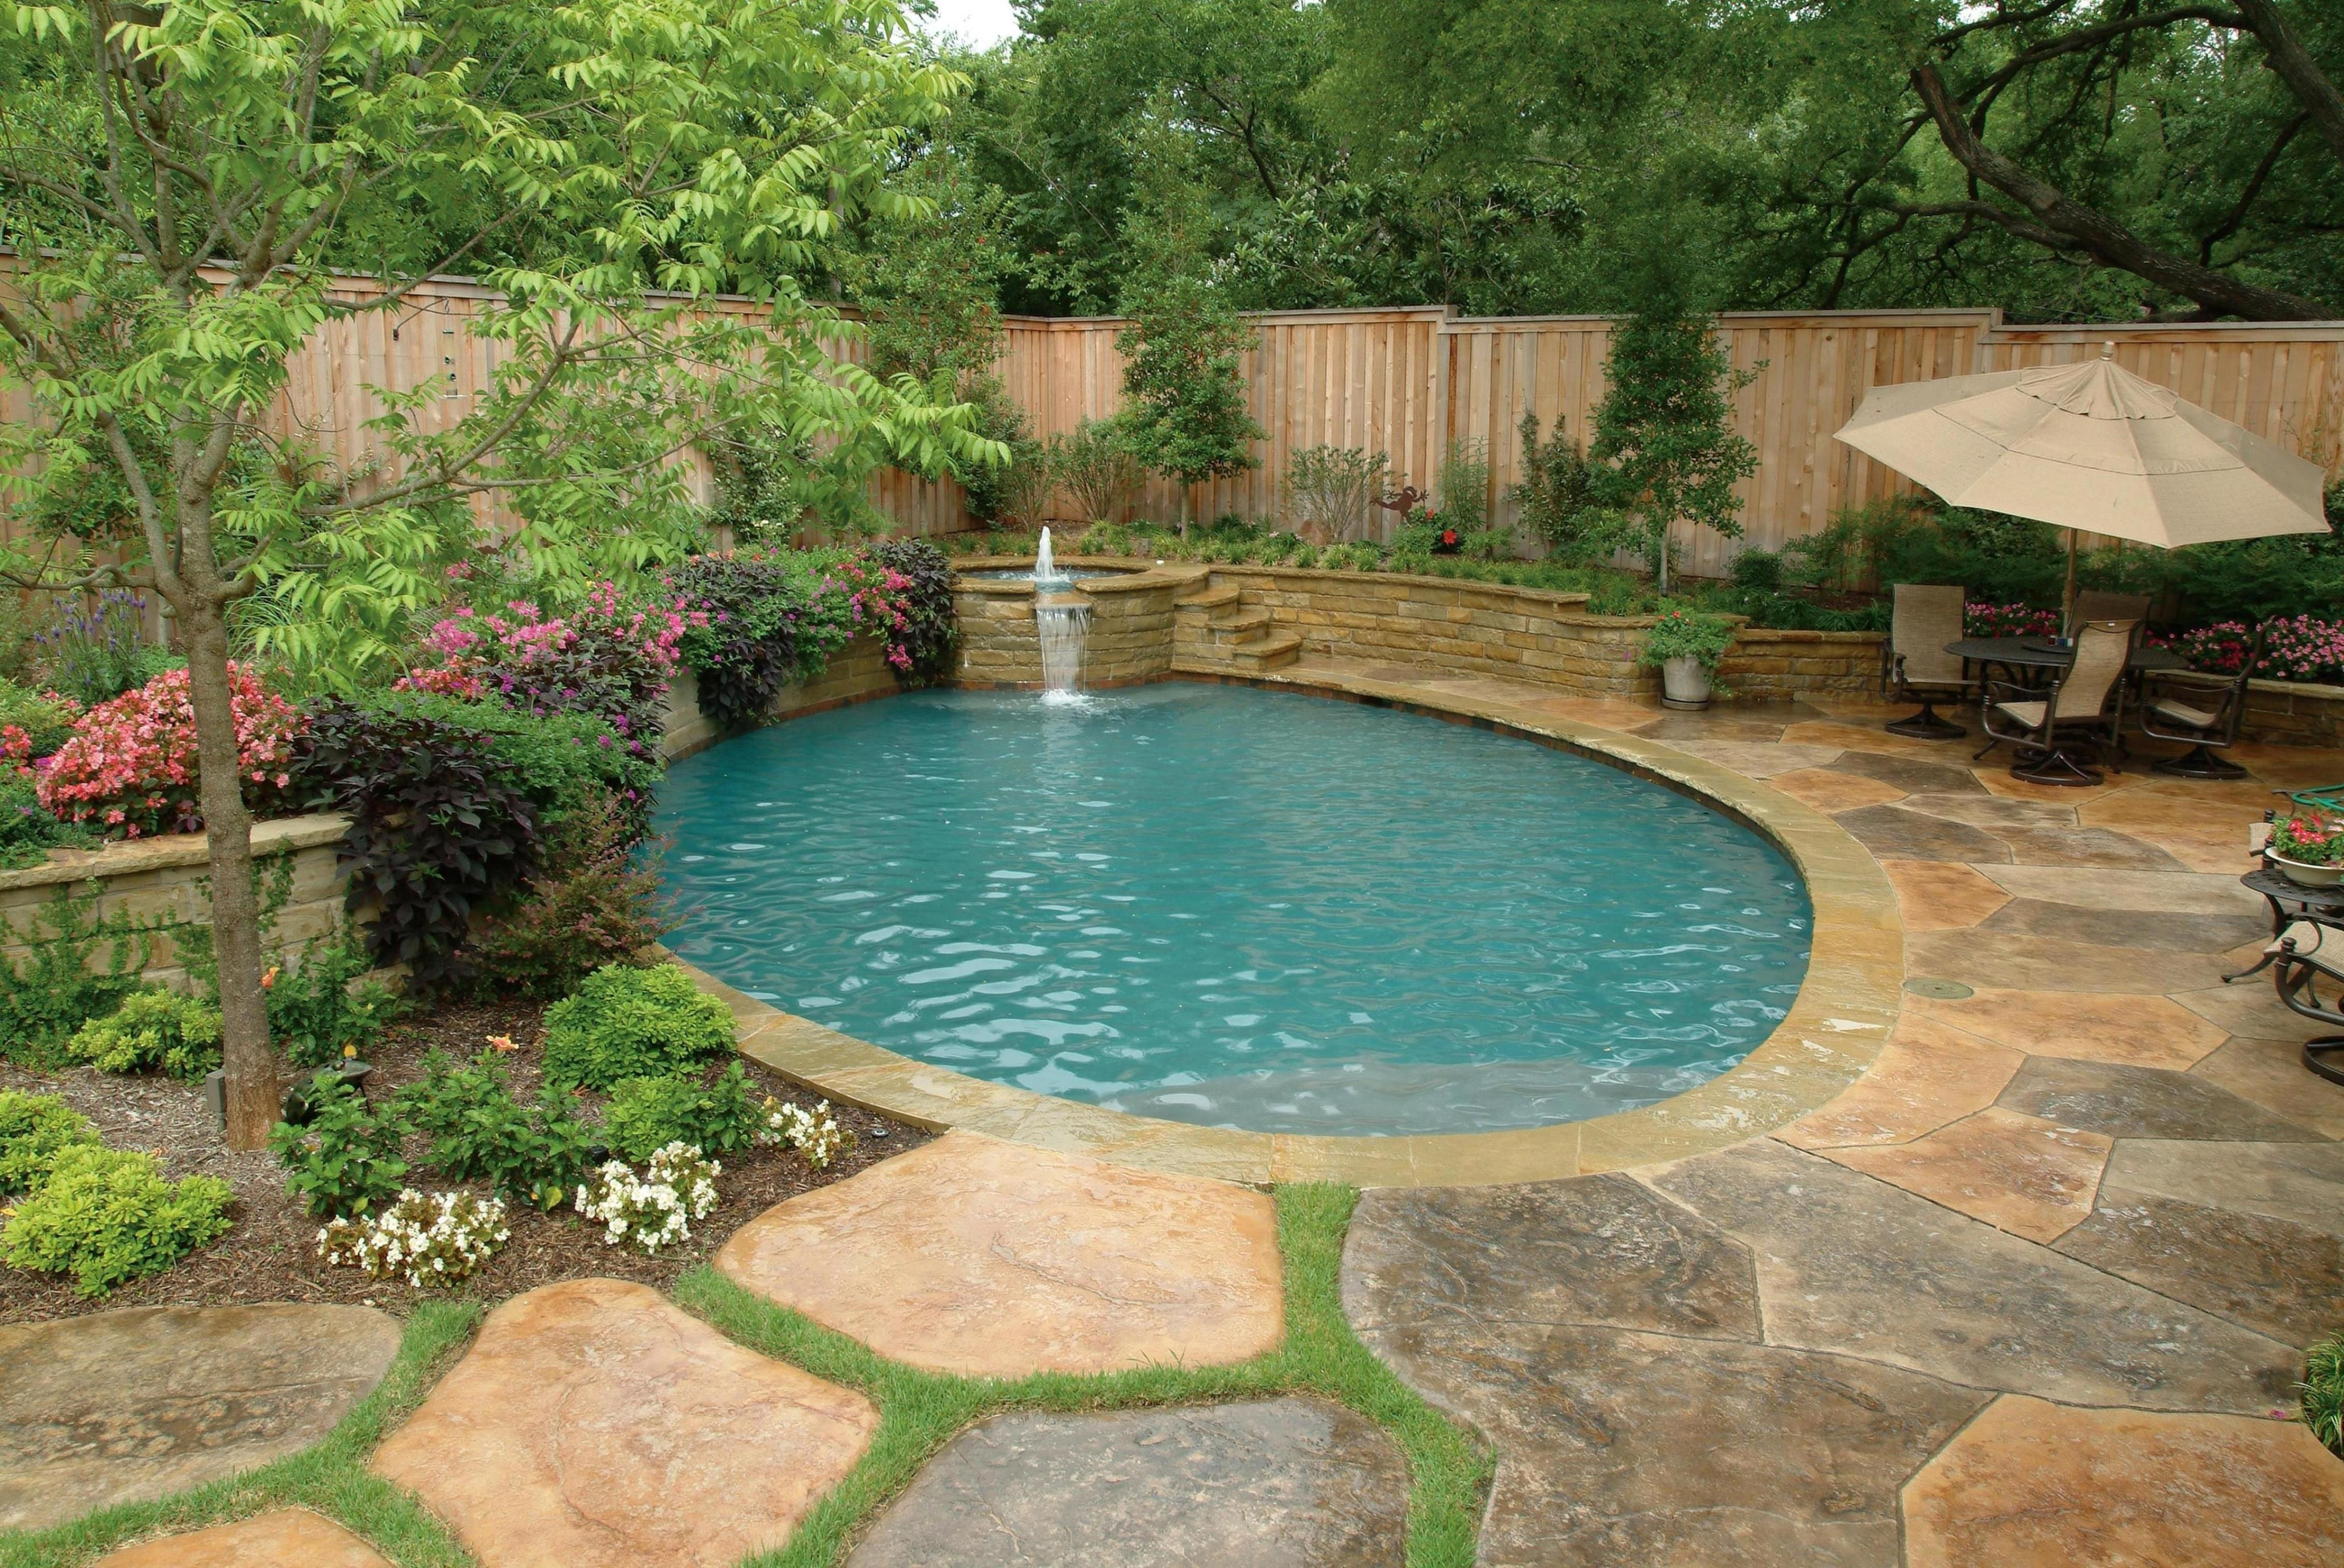 20 Best Landscaping Around Above Ground Pool 2019 37